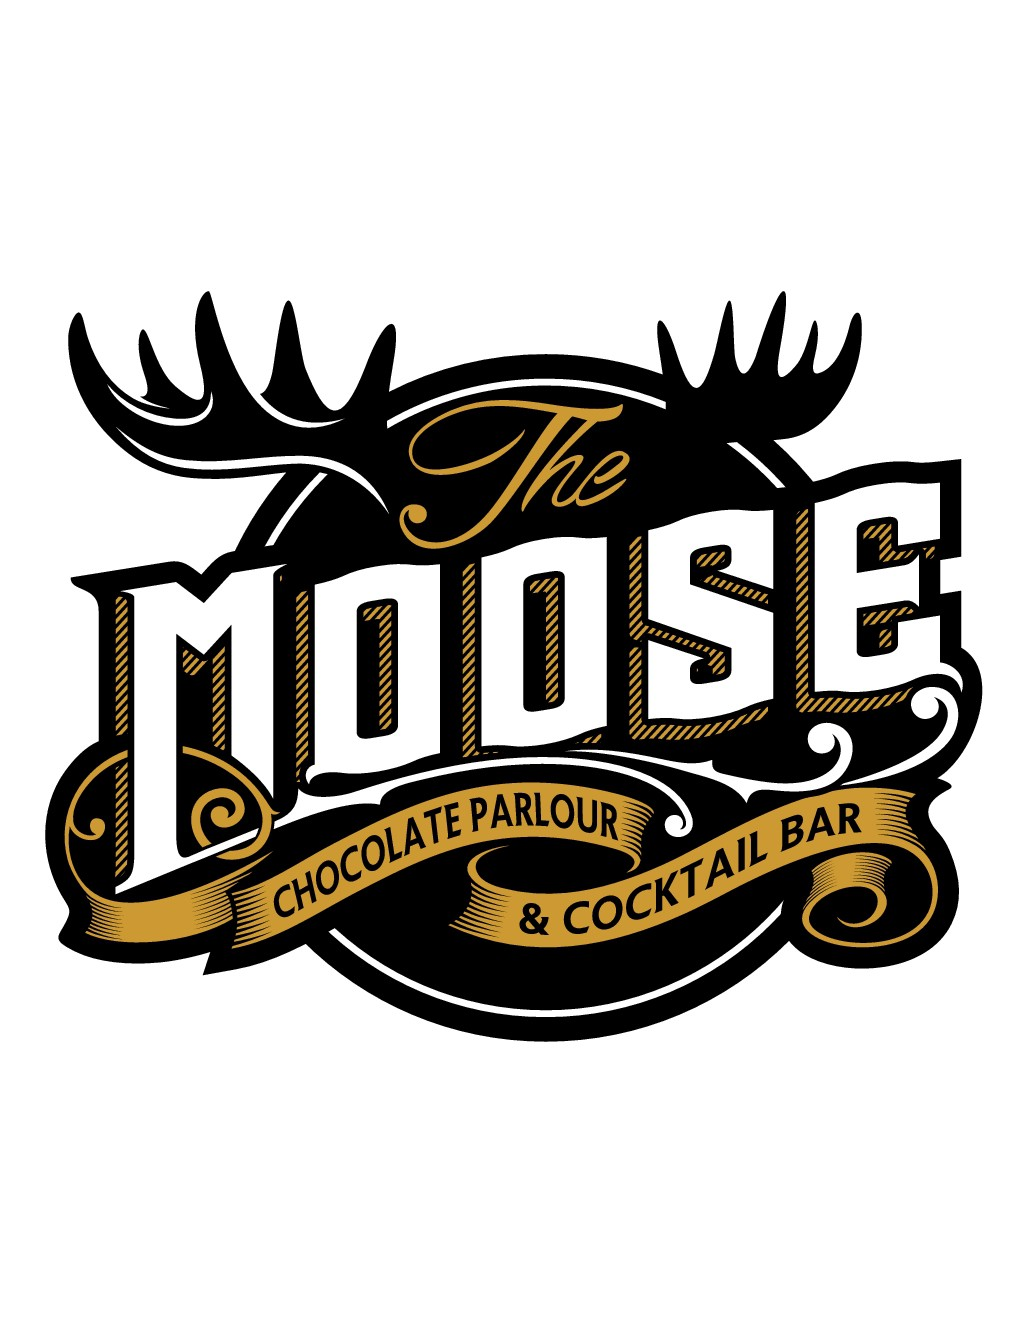 Downtown Cocktail Bar Logo - The Moose